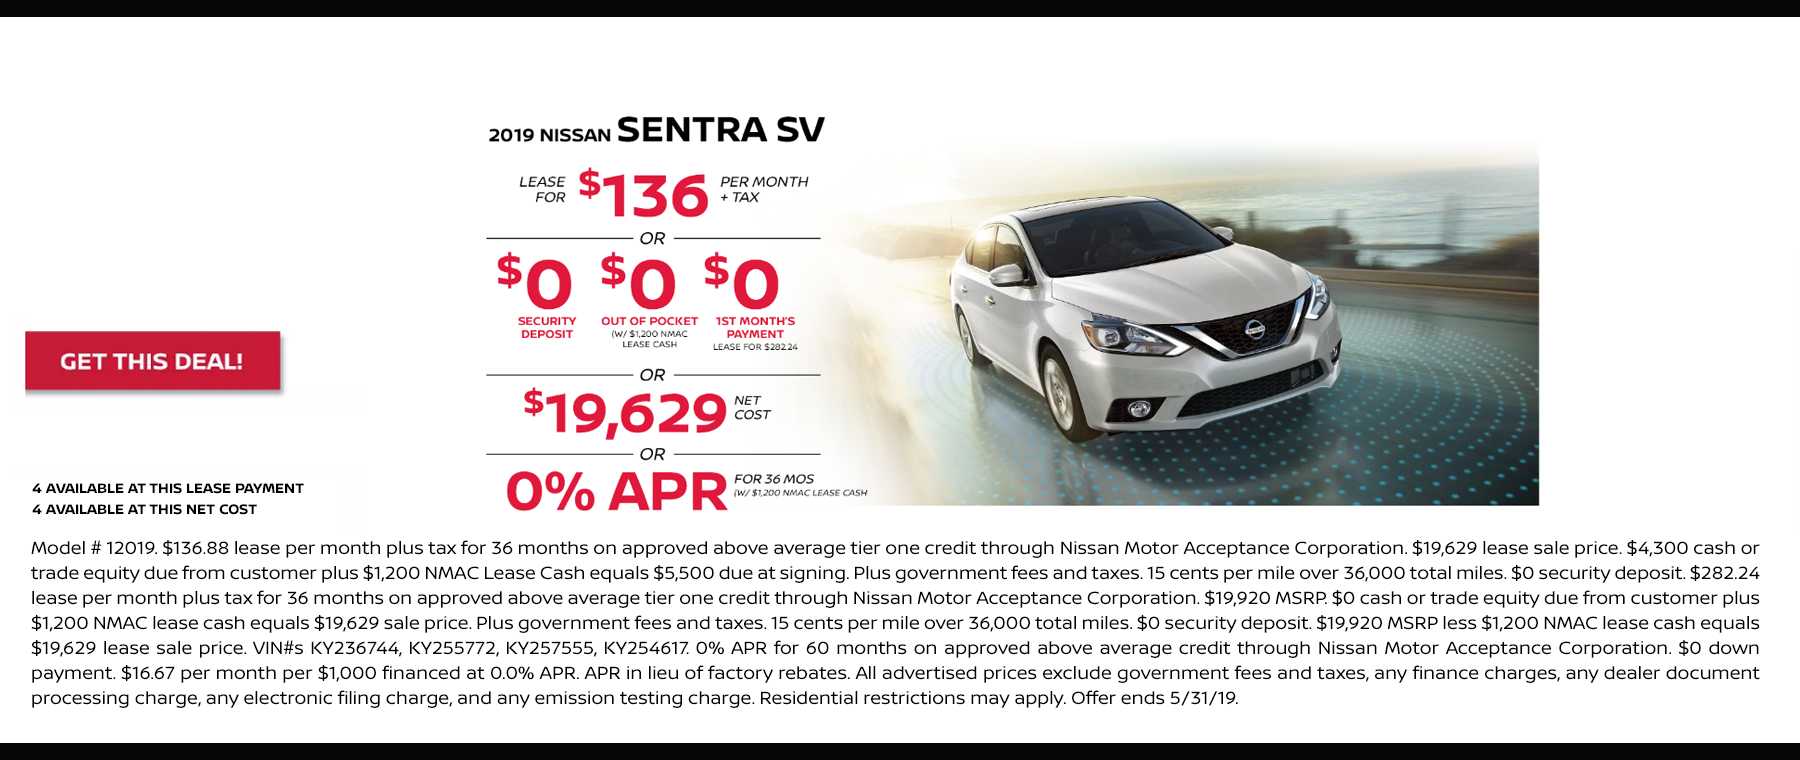 sentra lease may 2019